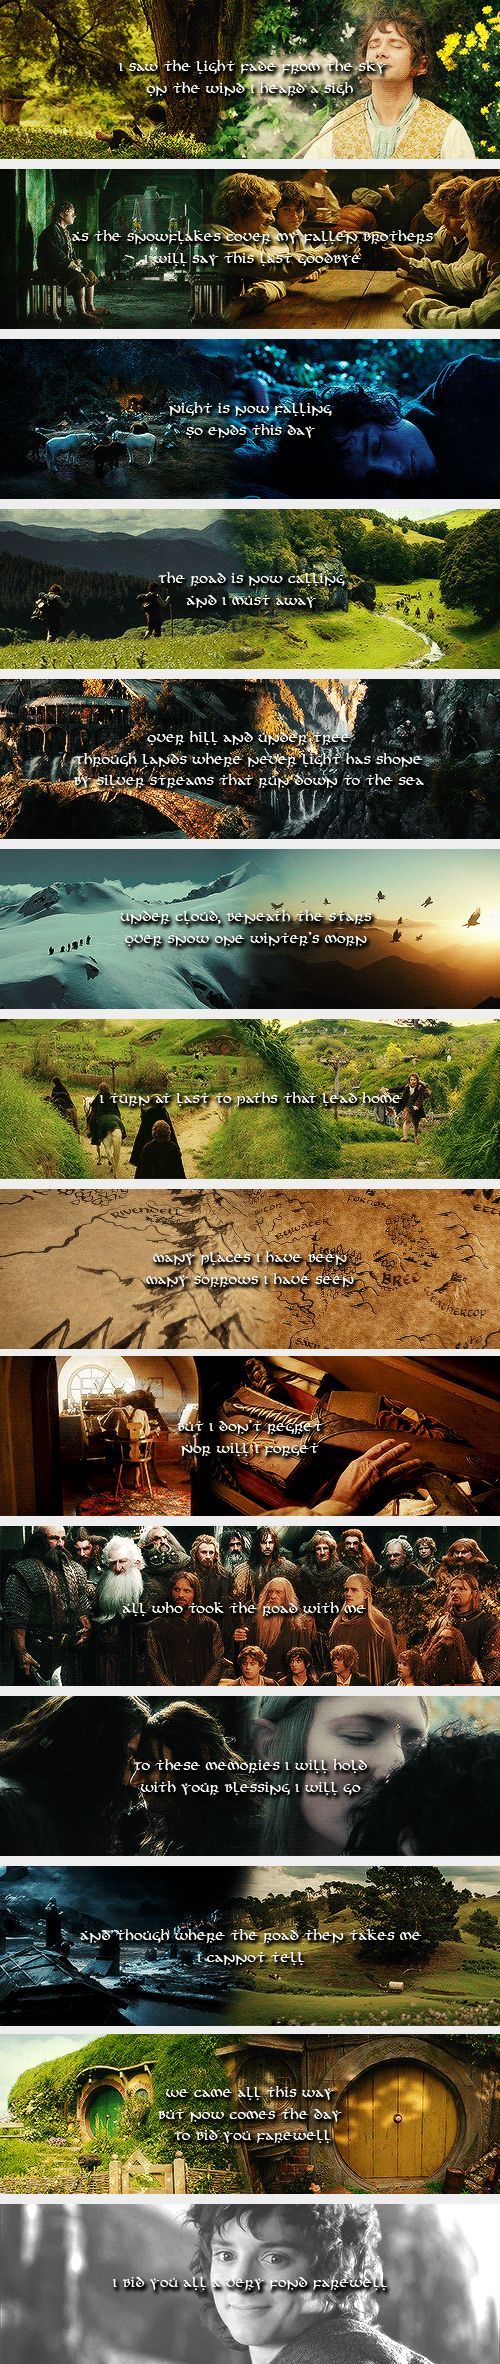 (gif set) ♪I bid you all a very fond farewell♪ ||| The Lord of the Rings and The Hobbit [The Last Goodbye - Billy Boyd]